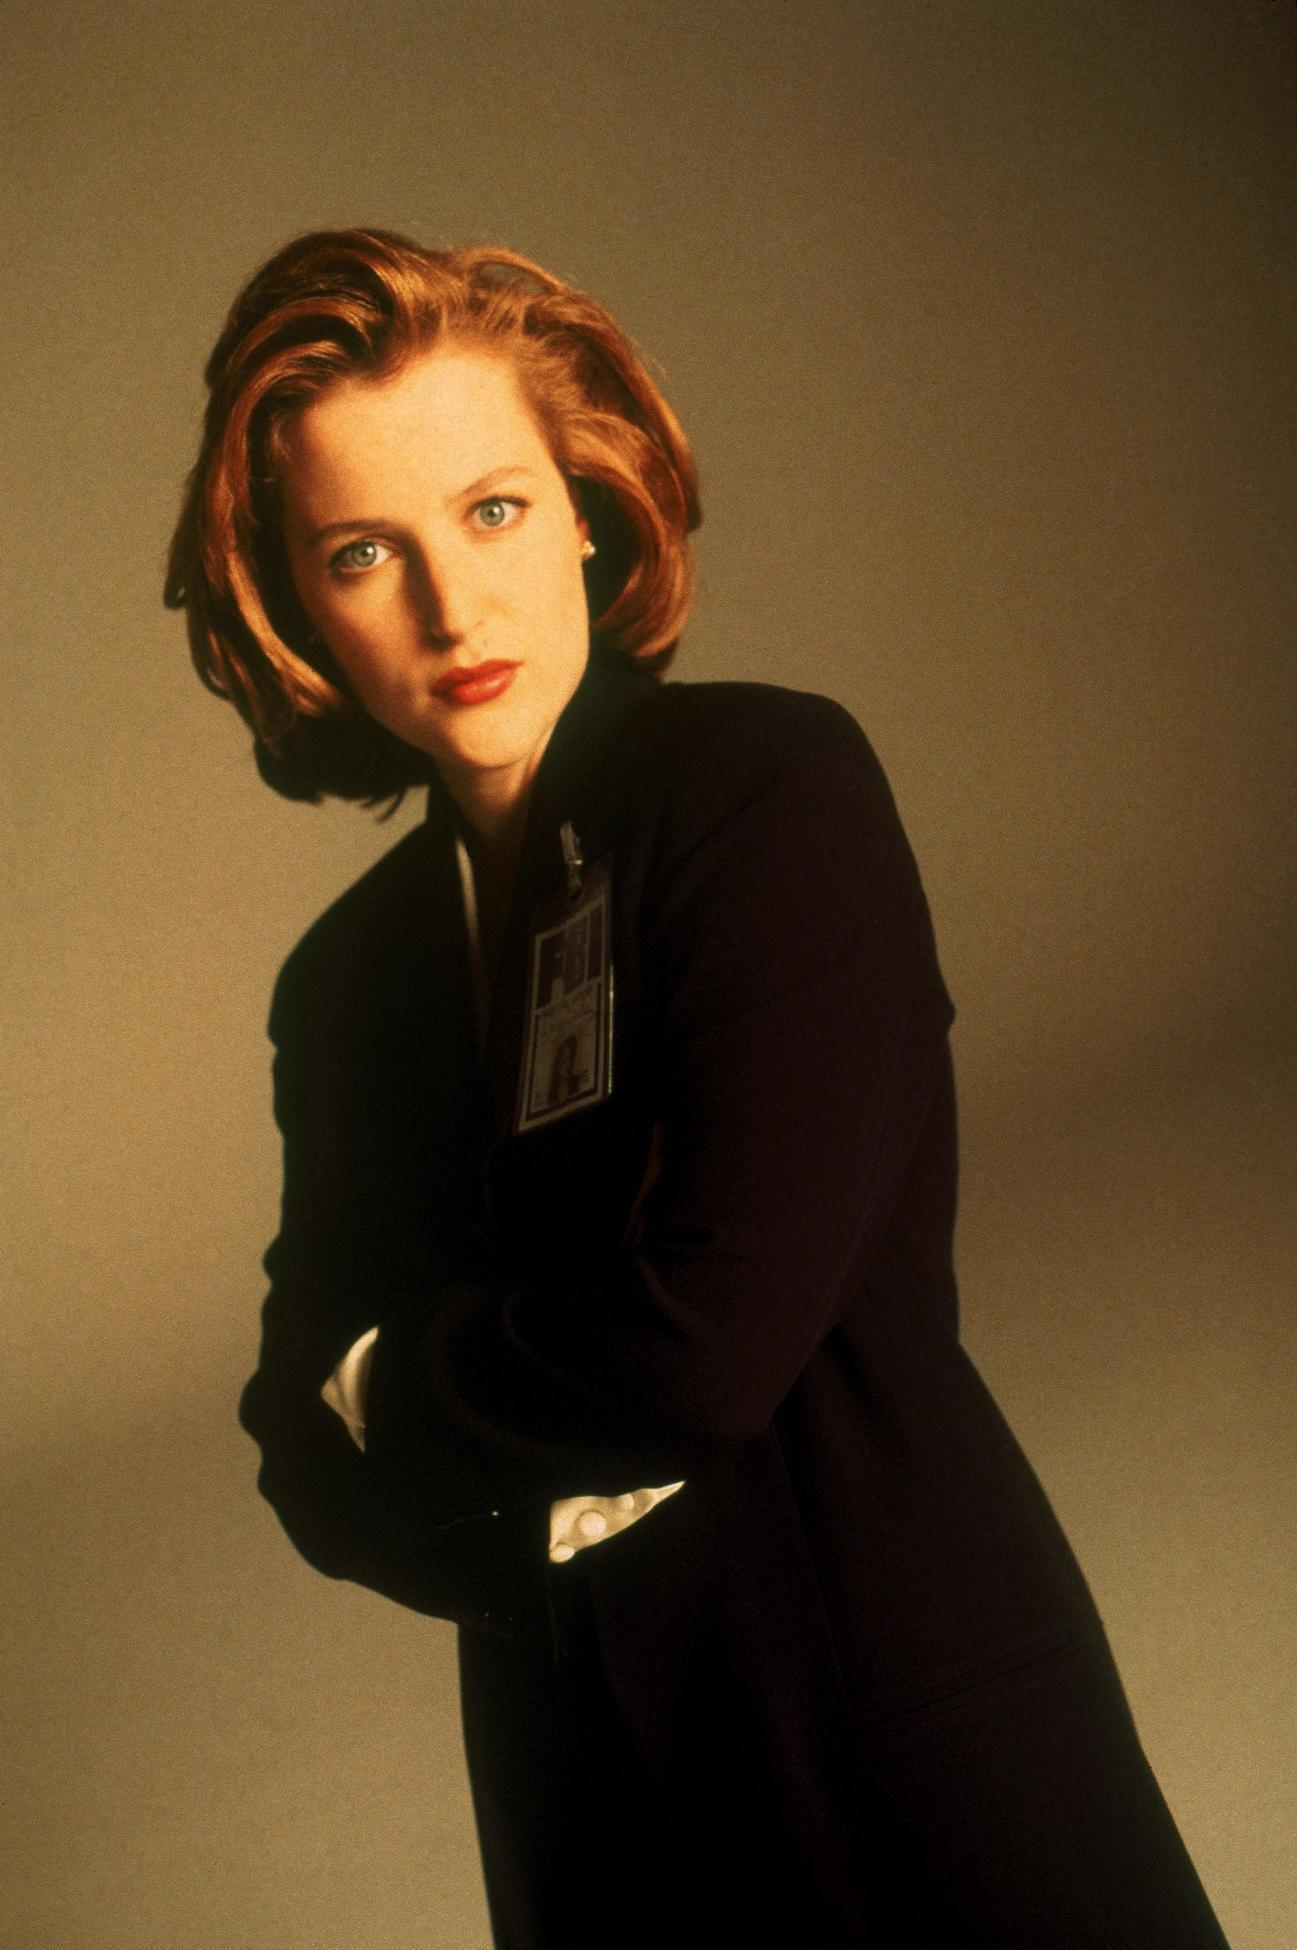 http://images2.fanpop.com/image/photos/9700000/Scully-Promos-the-x-files-9731345-1297-1950.jpg